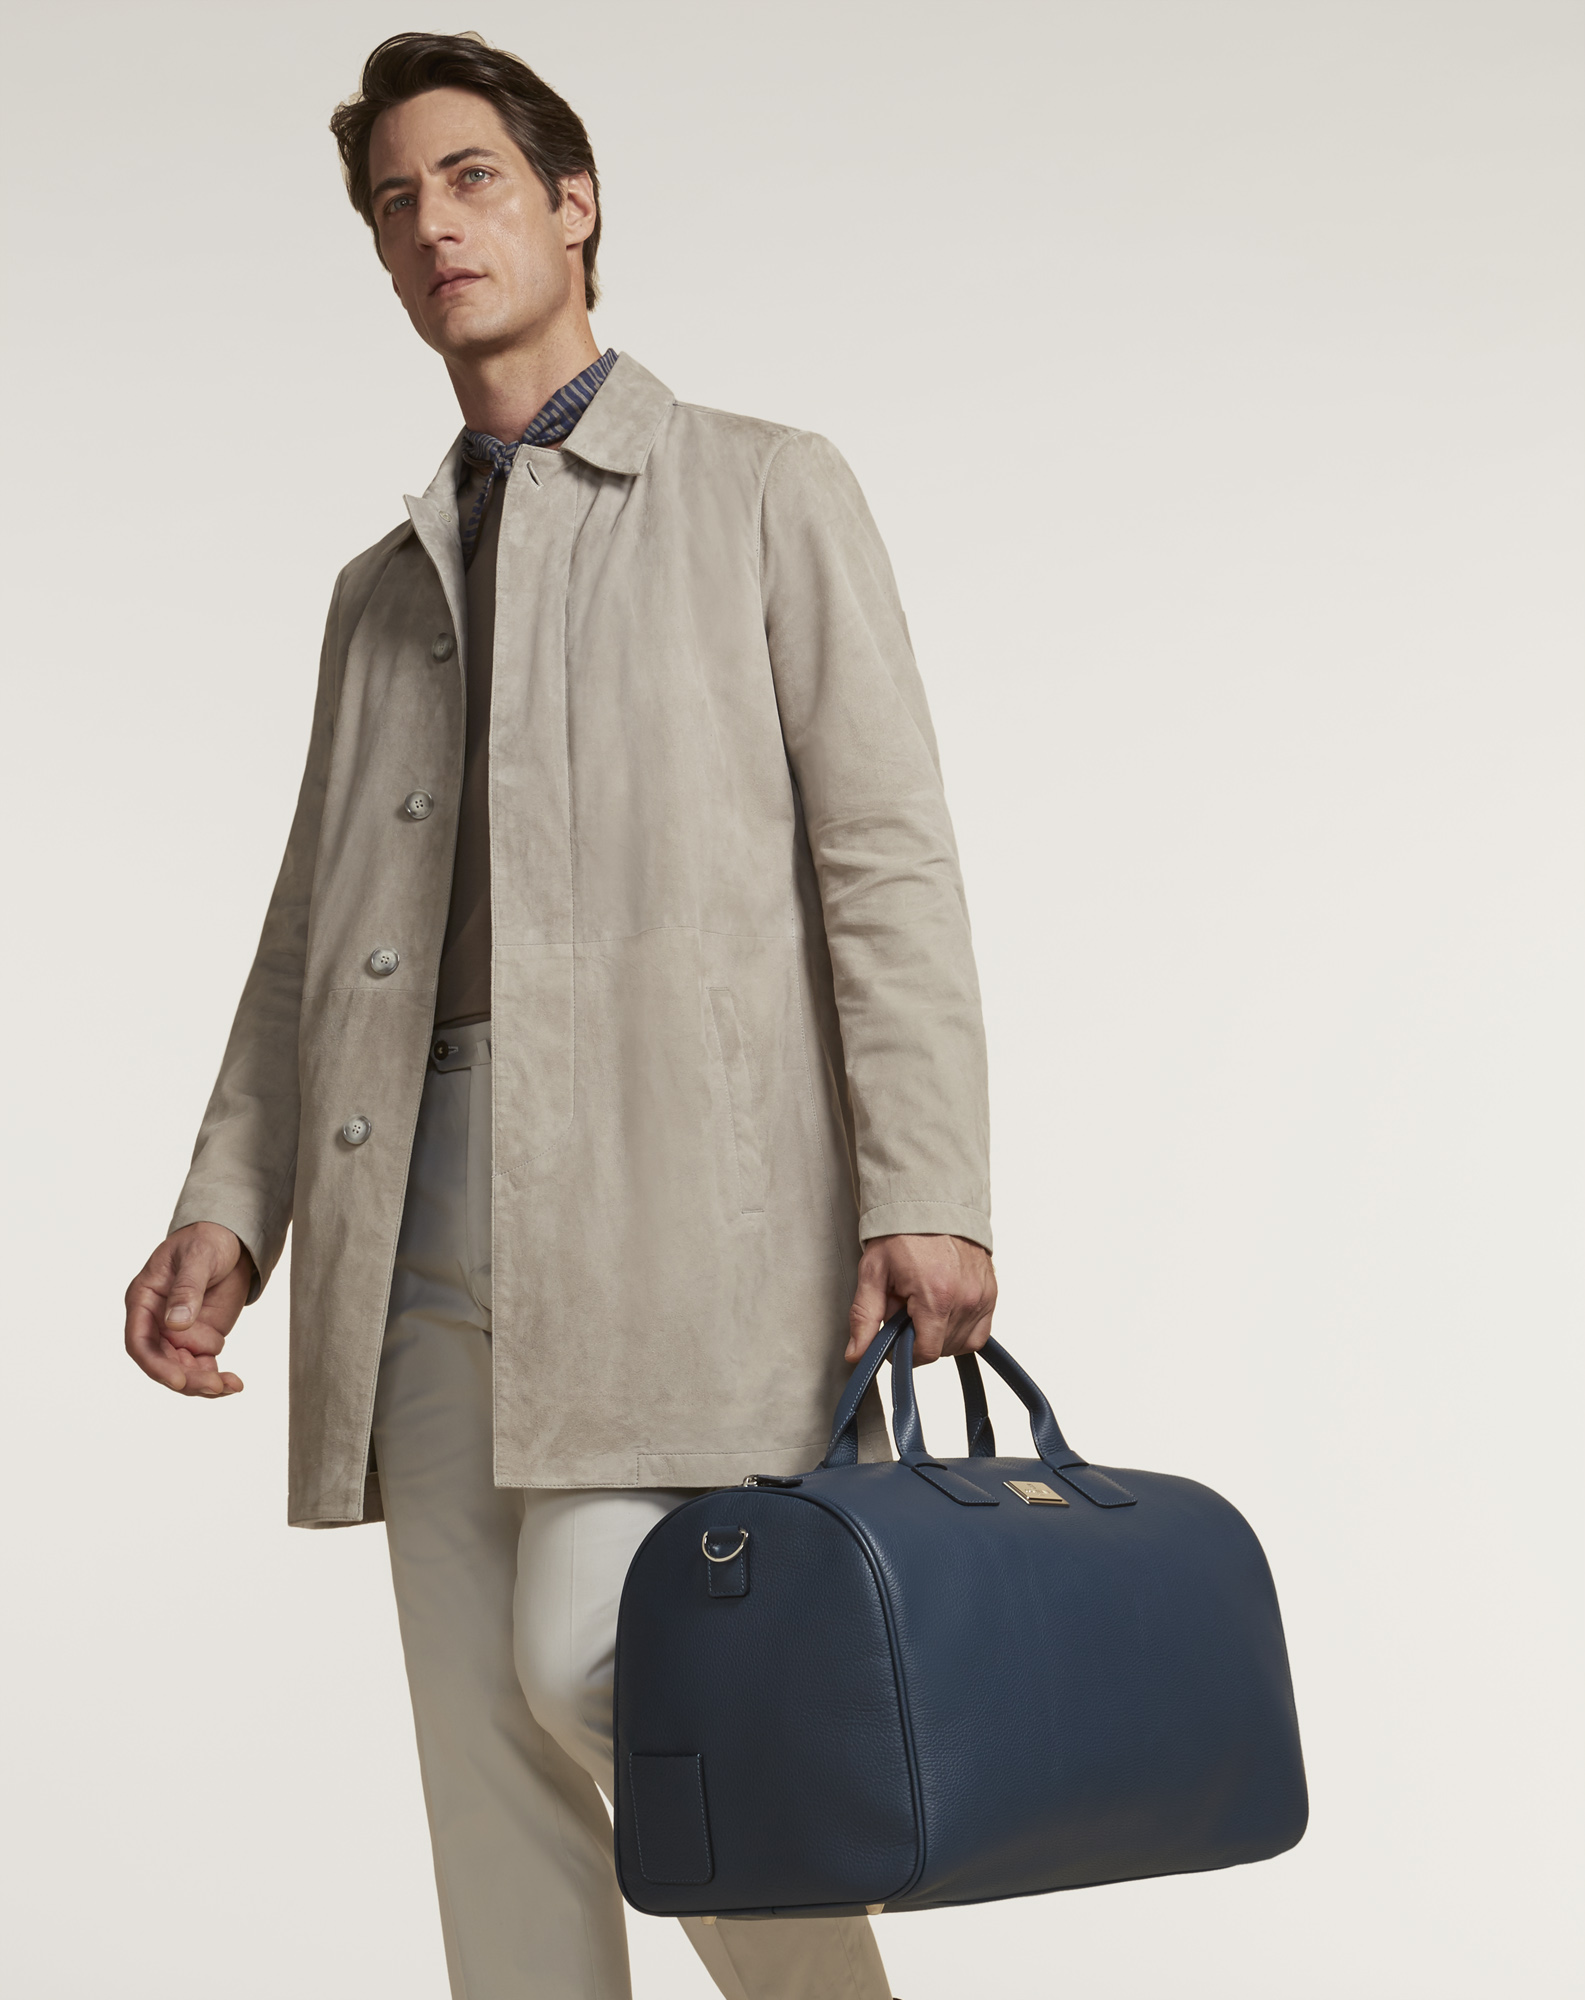 Corneliani suede trench coat - £1,600 - The perfect transitional coat for warmer spring days